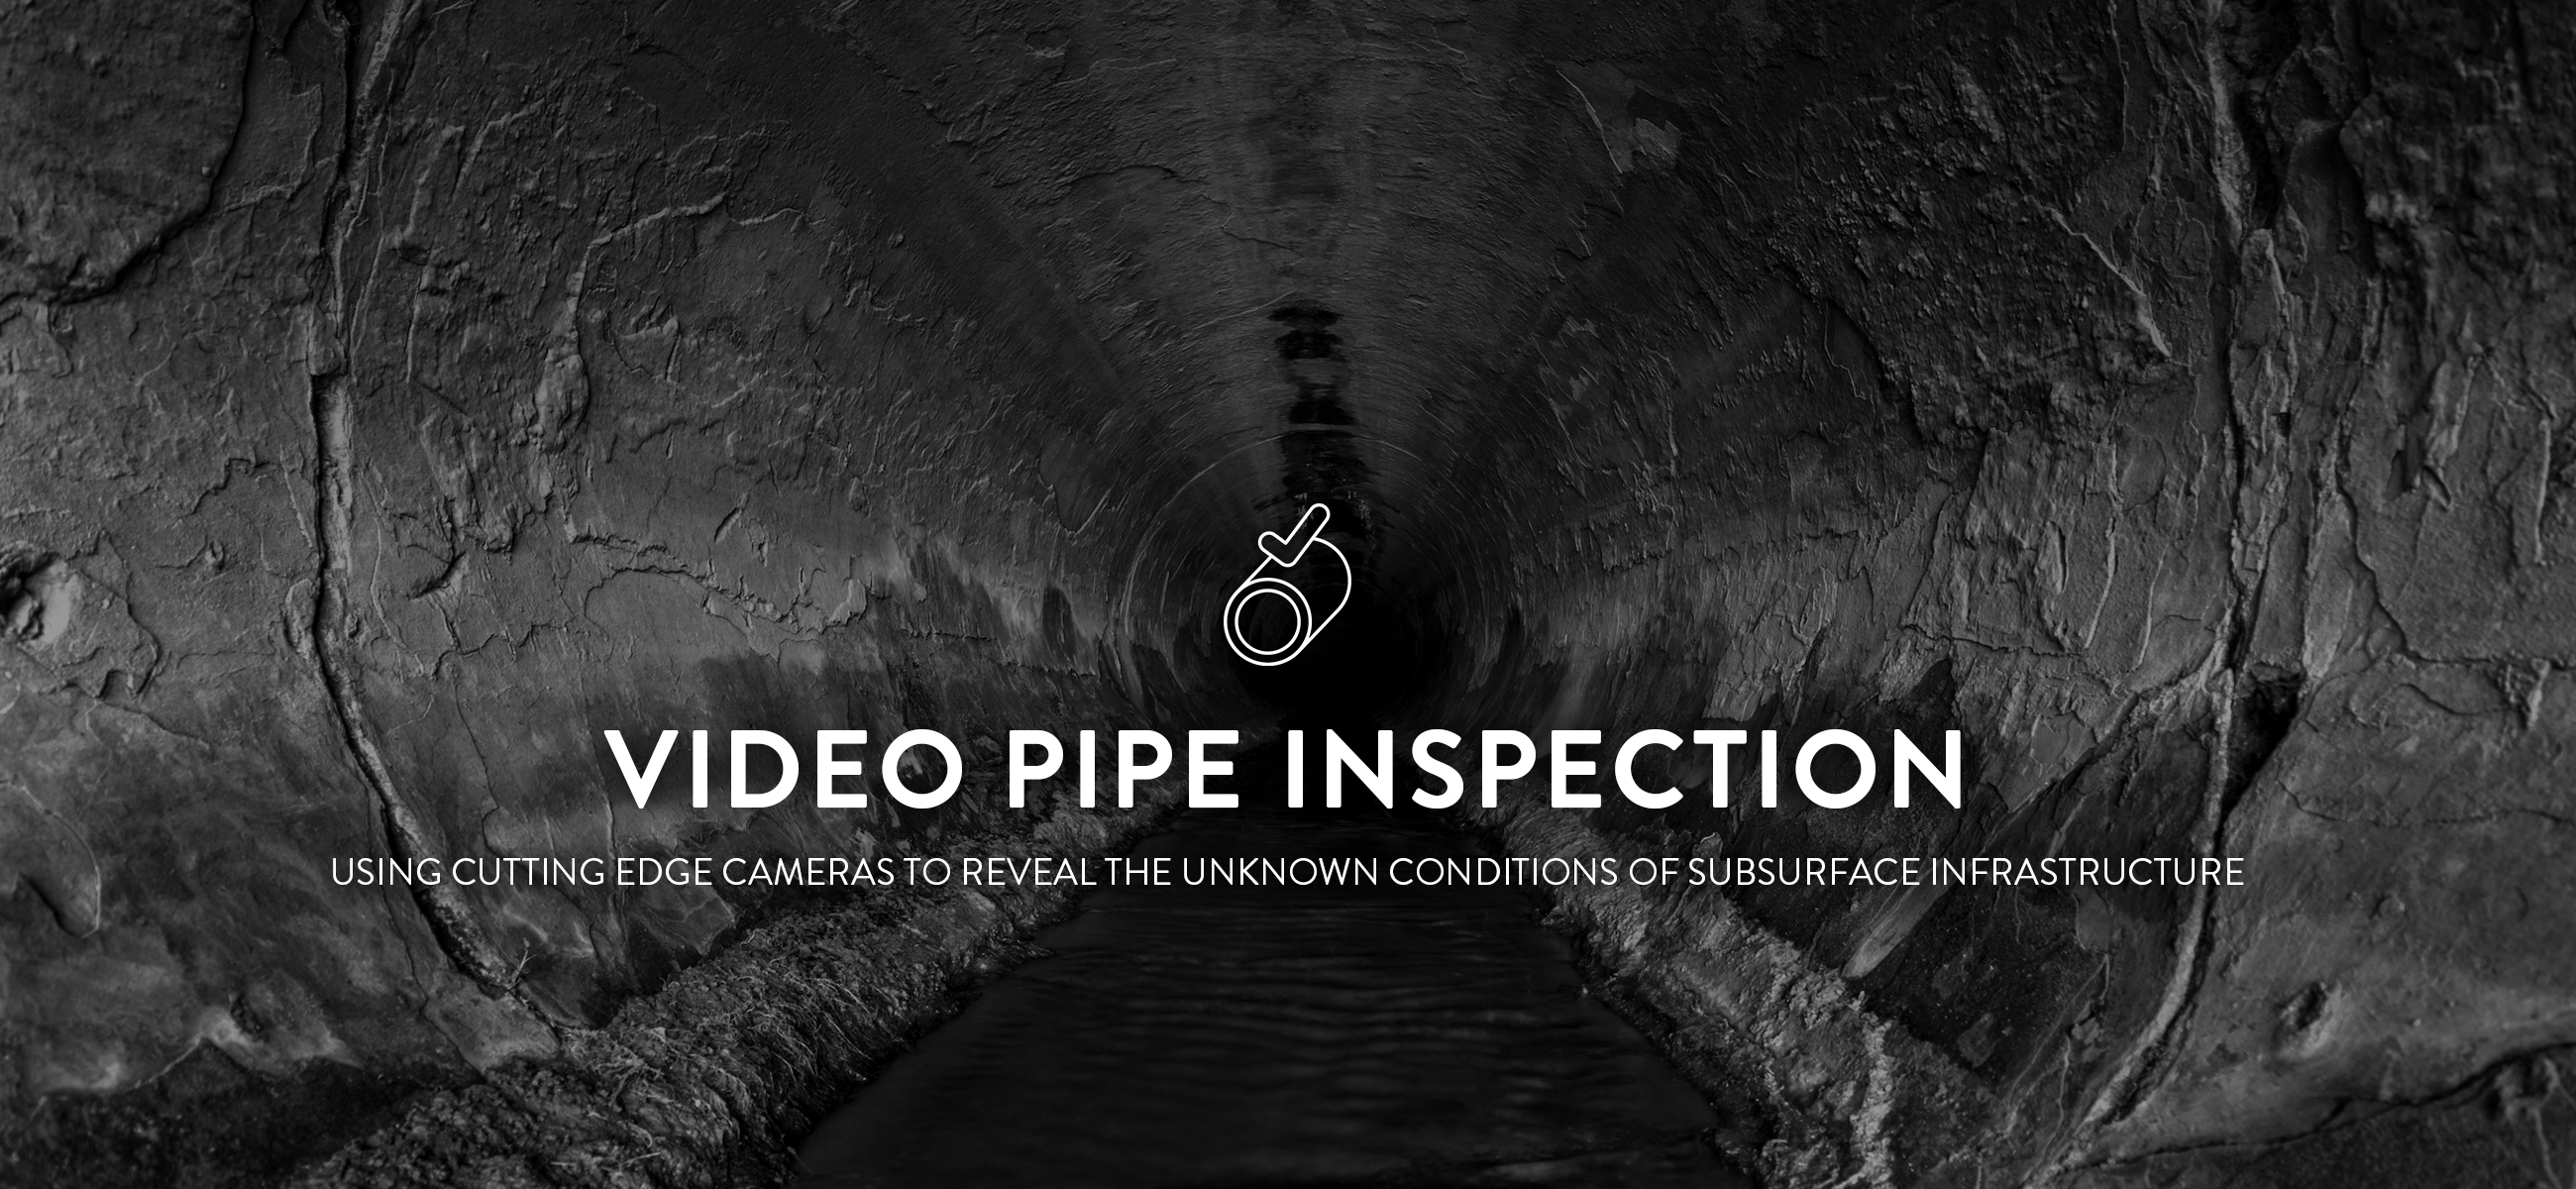 video-pipe-inspection.jpg